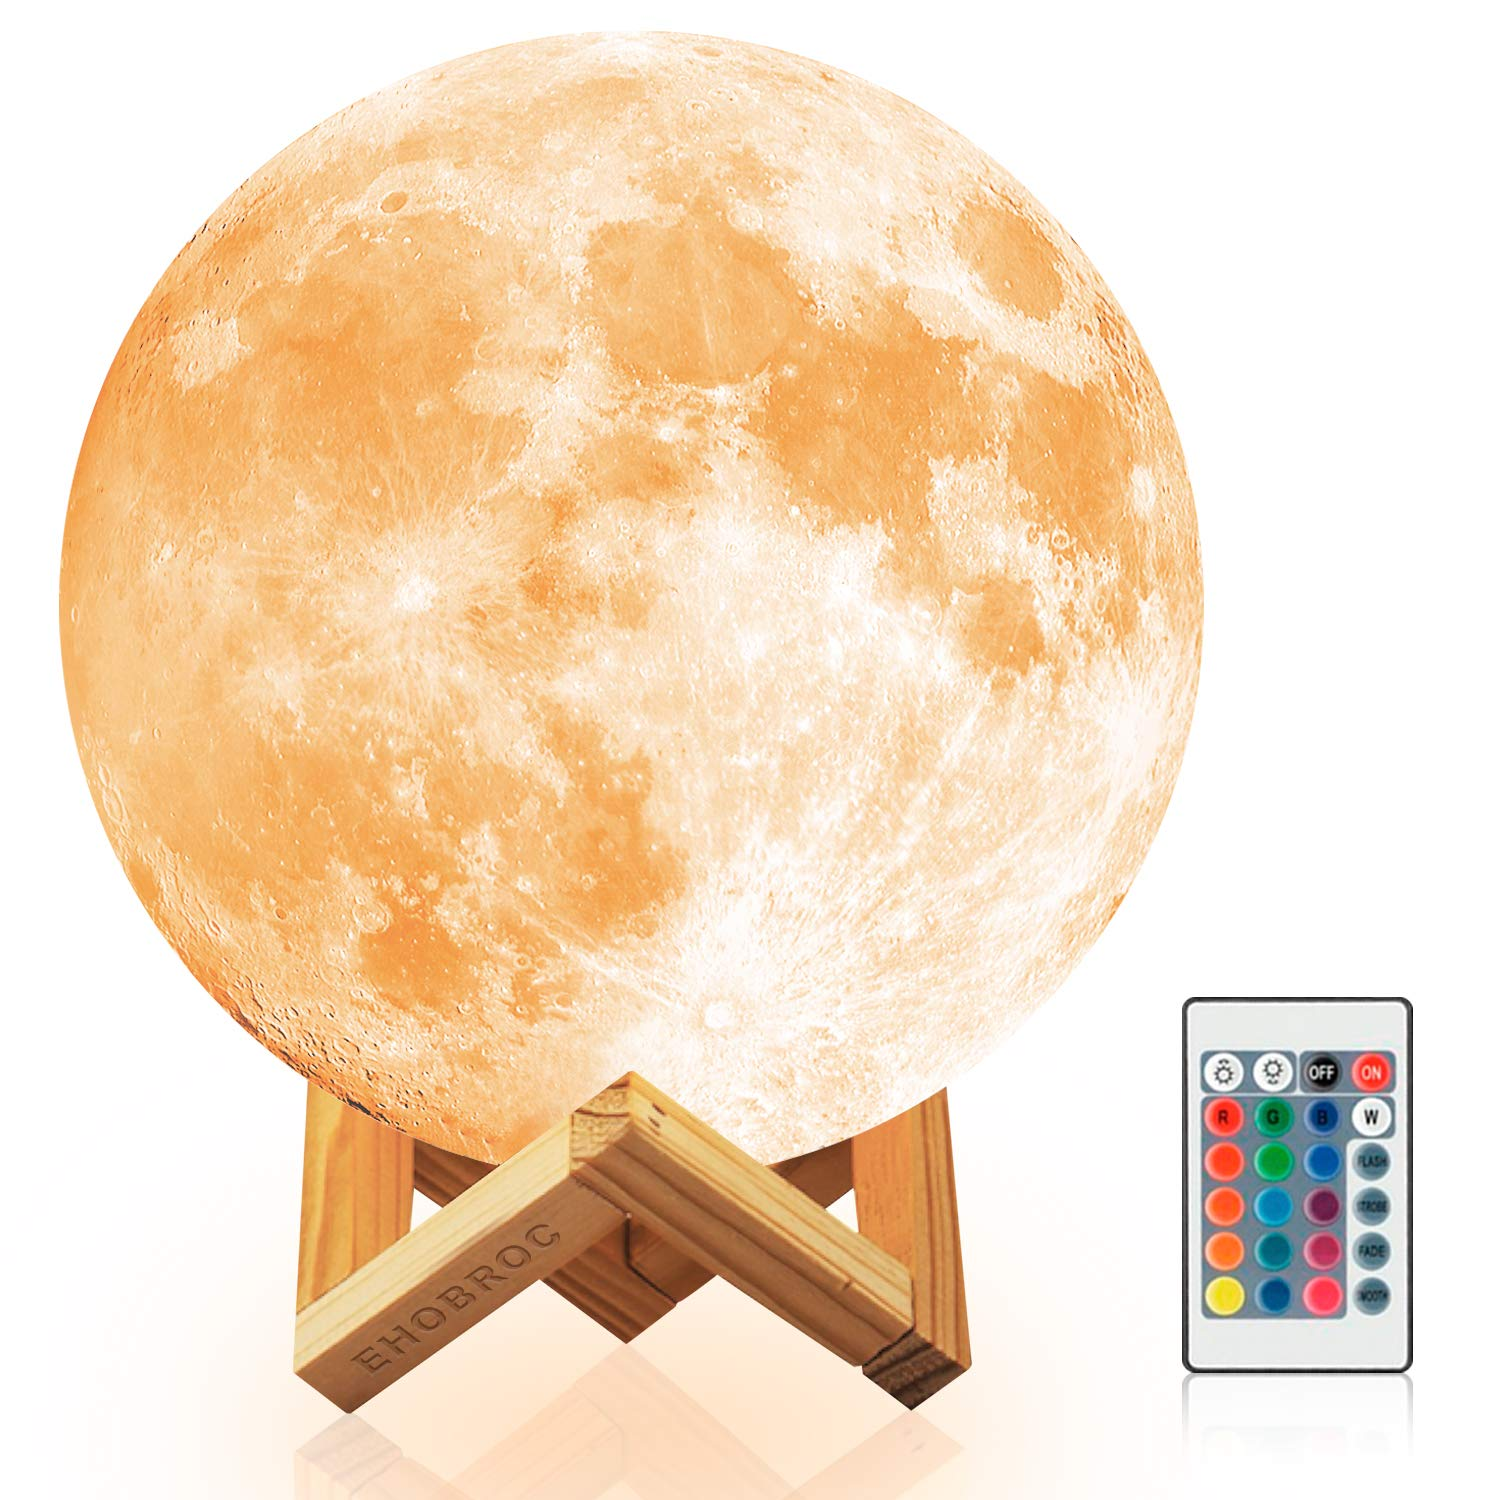 Ehobroc Moon Lamp, 3D Printing Moon Globe Light 5.9 inch Glowing Moon Lamp Touch Change Colors, Dimmable Remote Control 16 Colors RGB LED Moon Lamp, Decor Moon Light for Kids, Birthday, Bedside